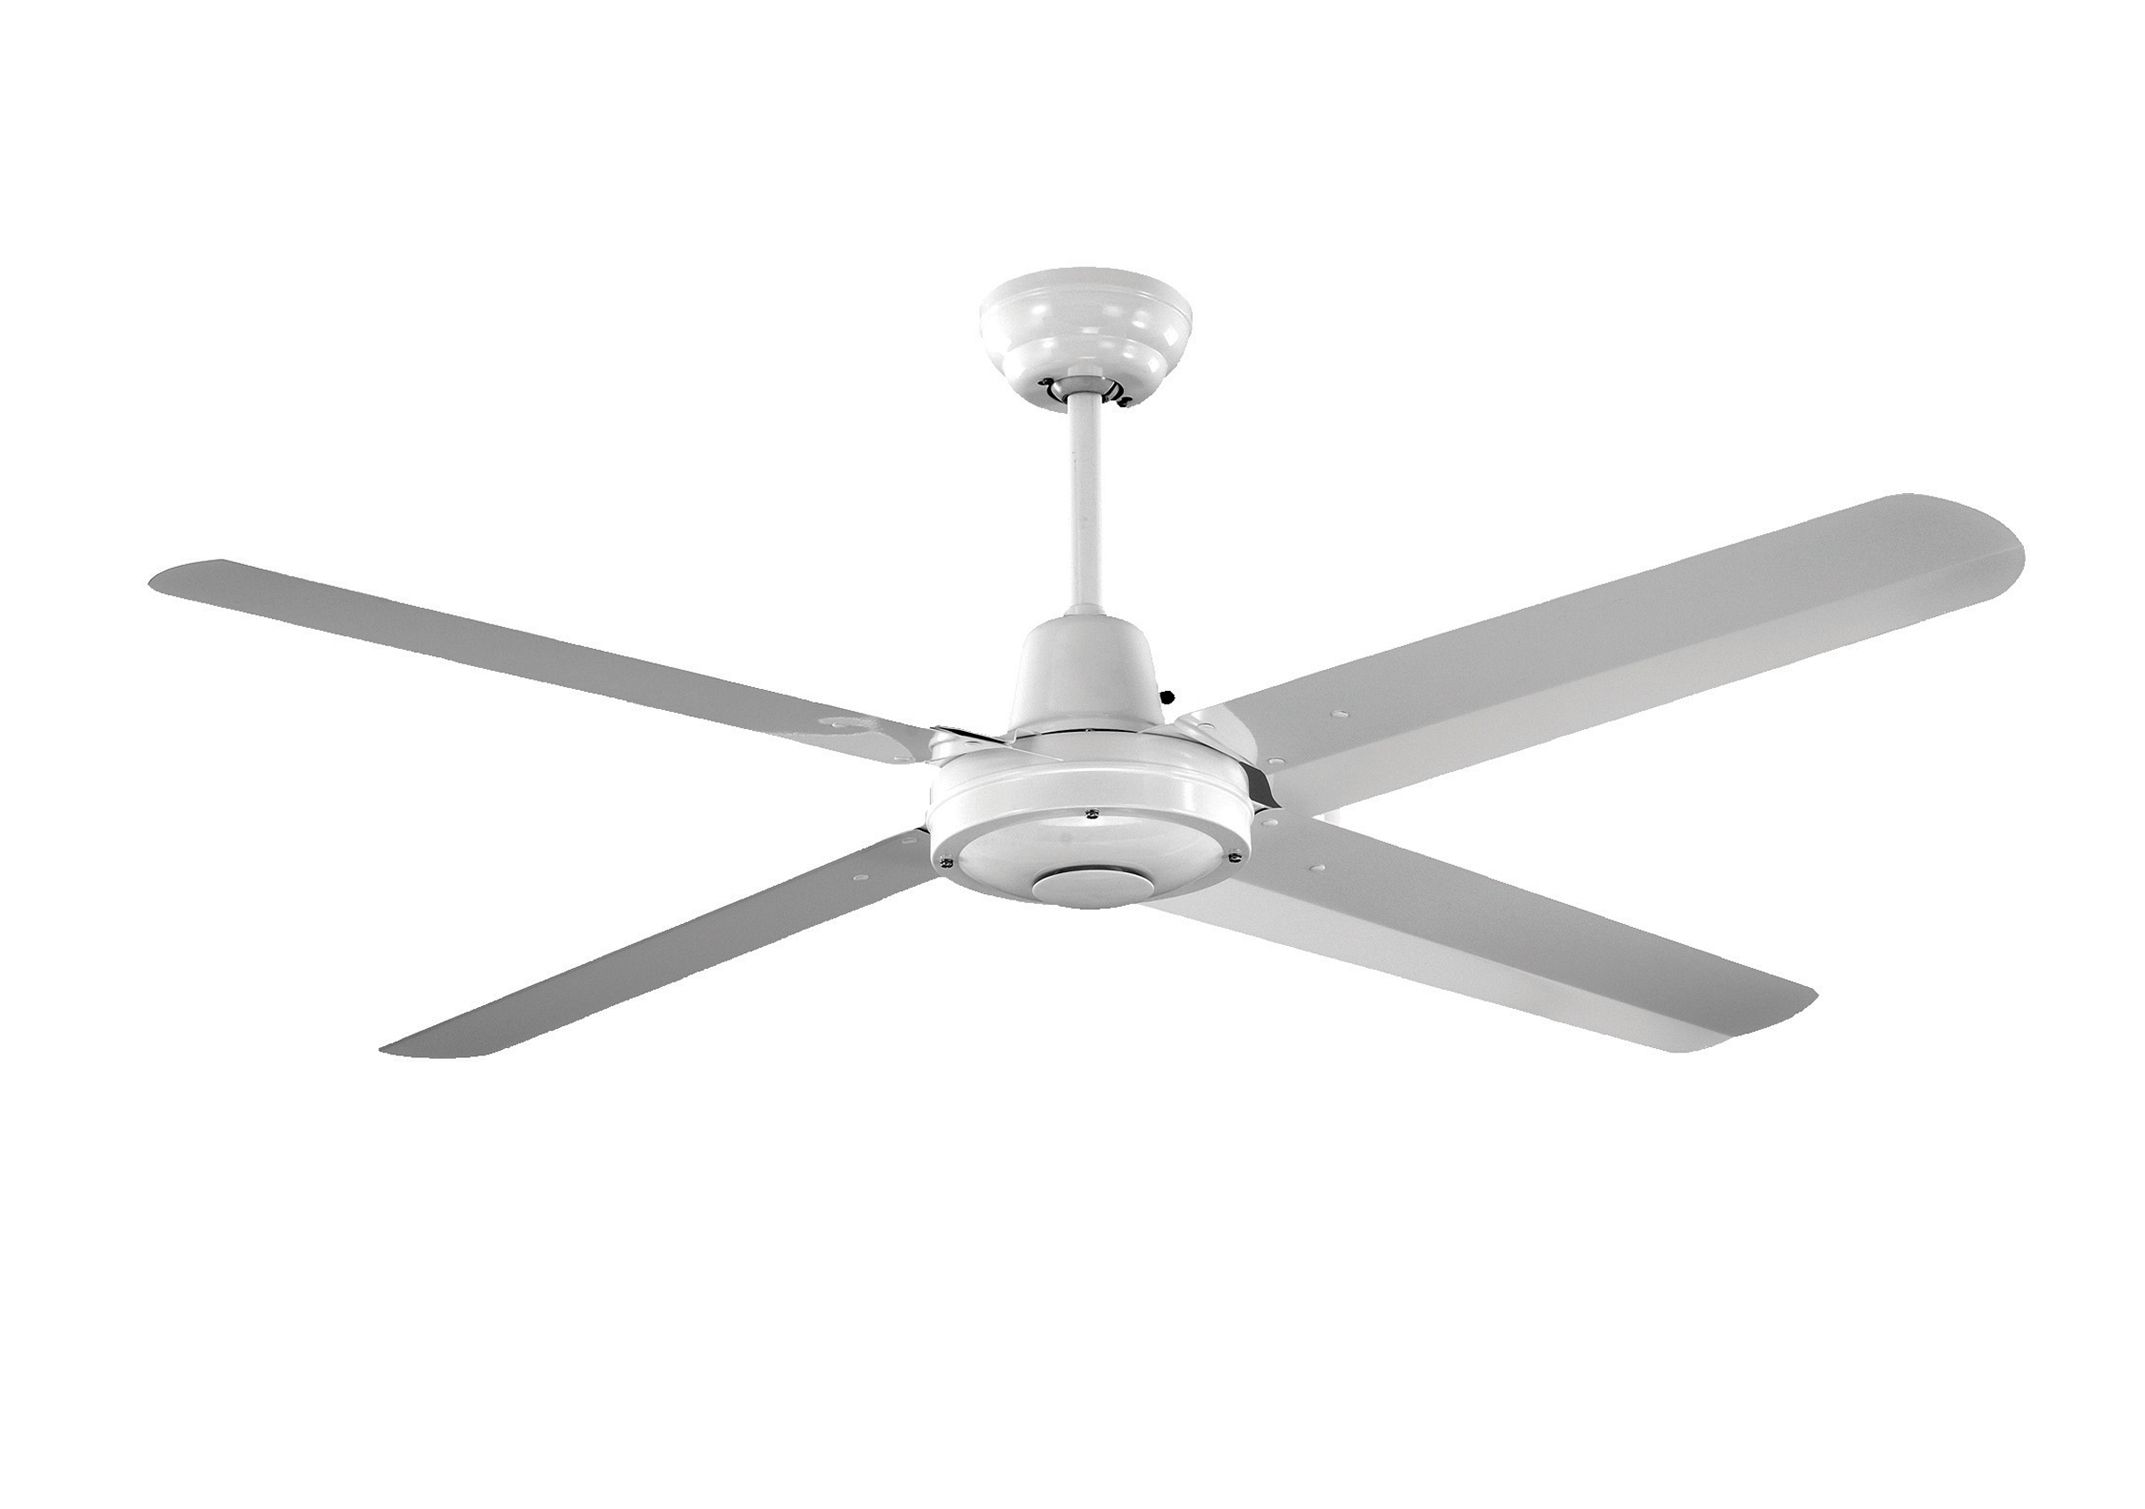 Are You In Need Of A Ceiling Fans Martec Australia Can Provide With The Best Online For Price